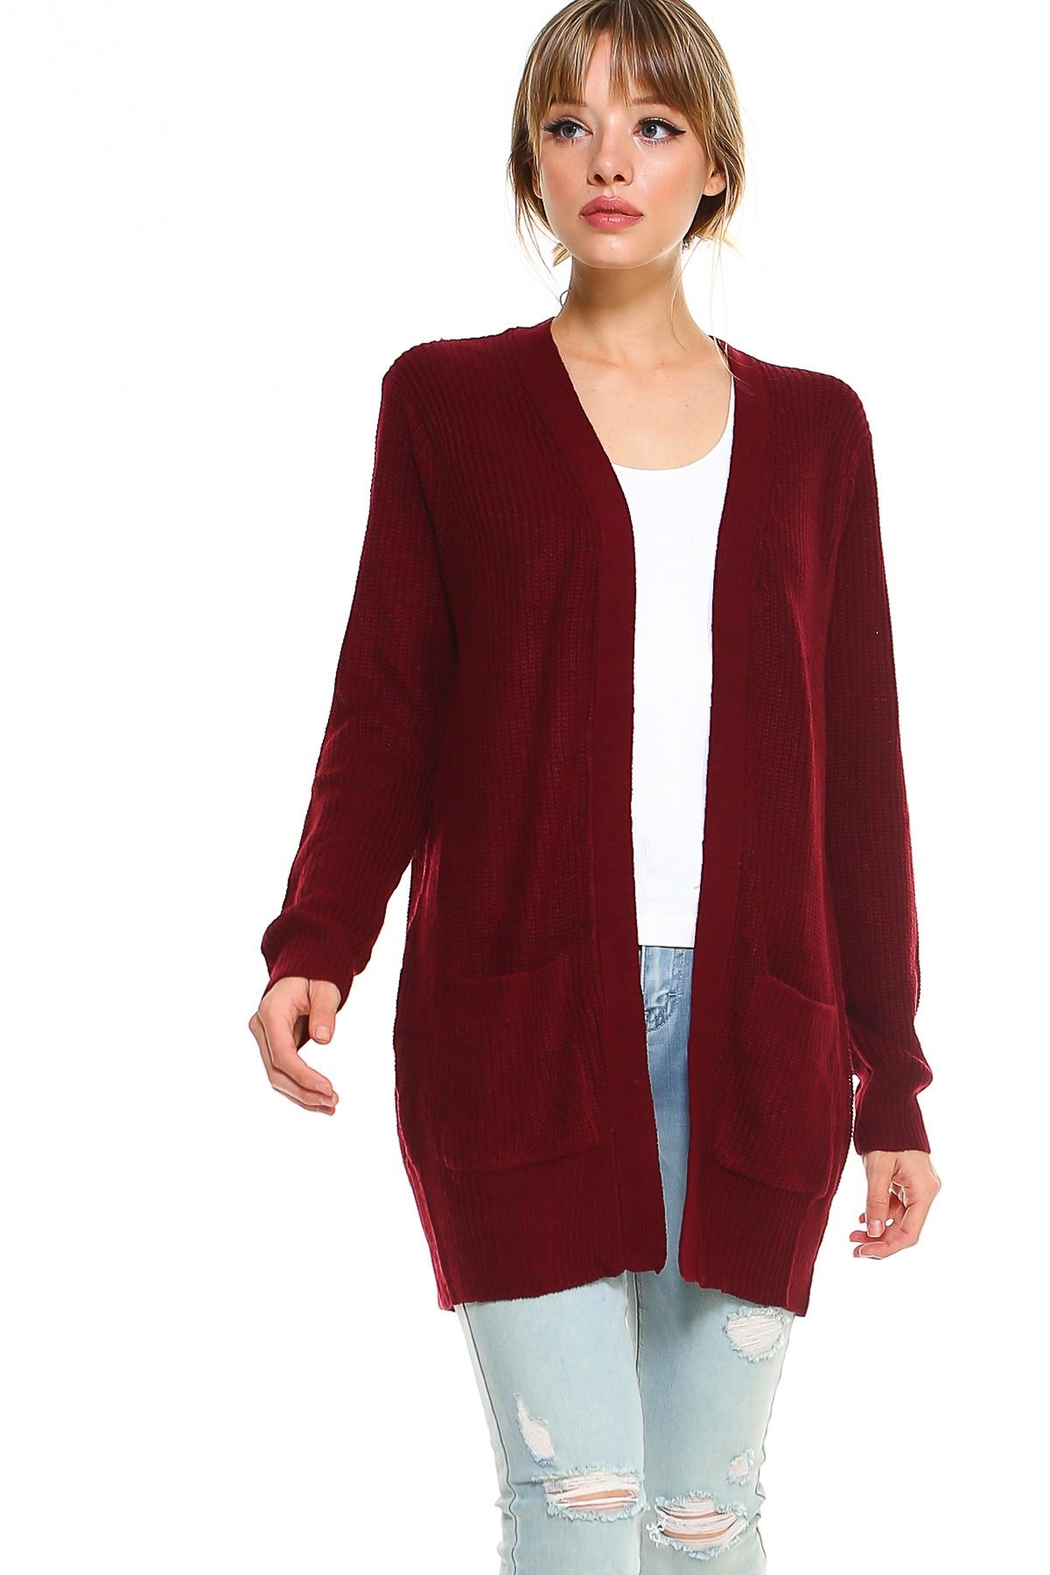 Miley and Molly 2 Pockets Sweater Cardigan For Women - Front Cropped Image